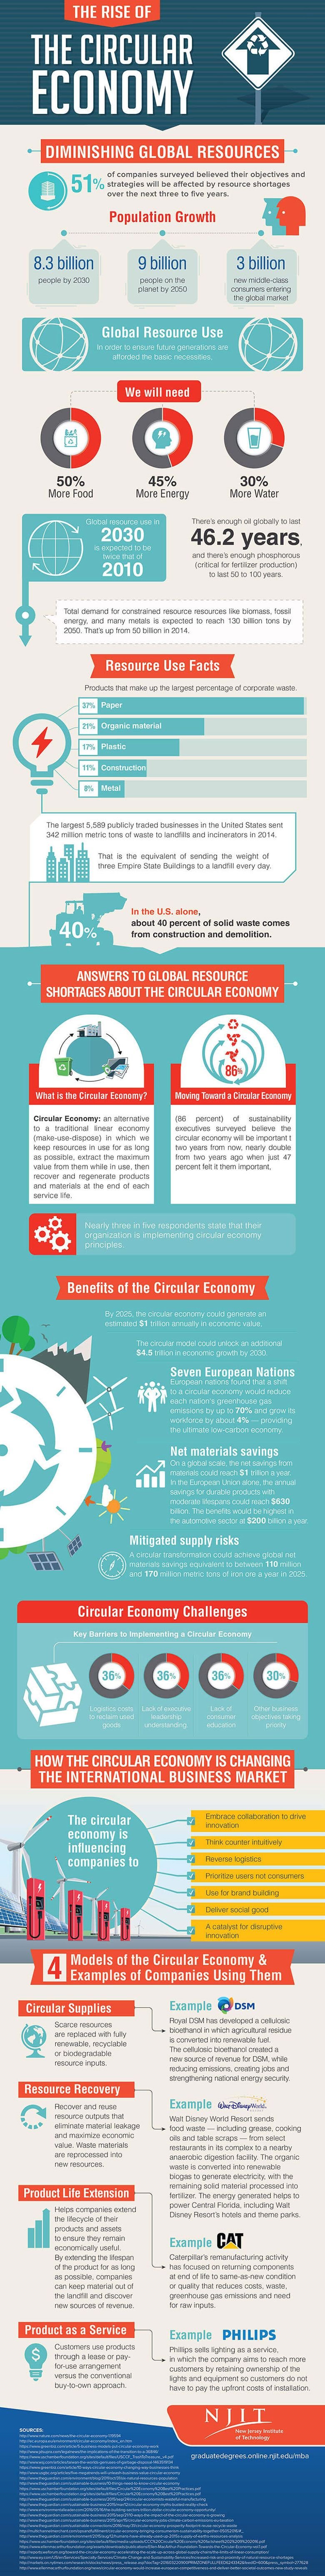 Rise of circular economy infographic